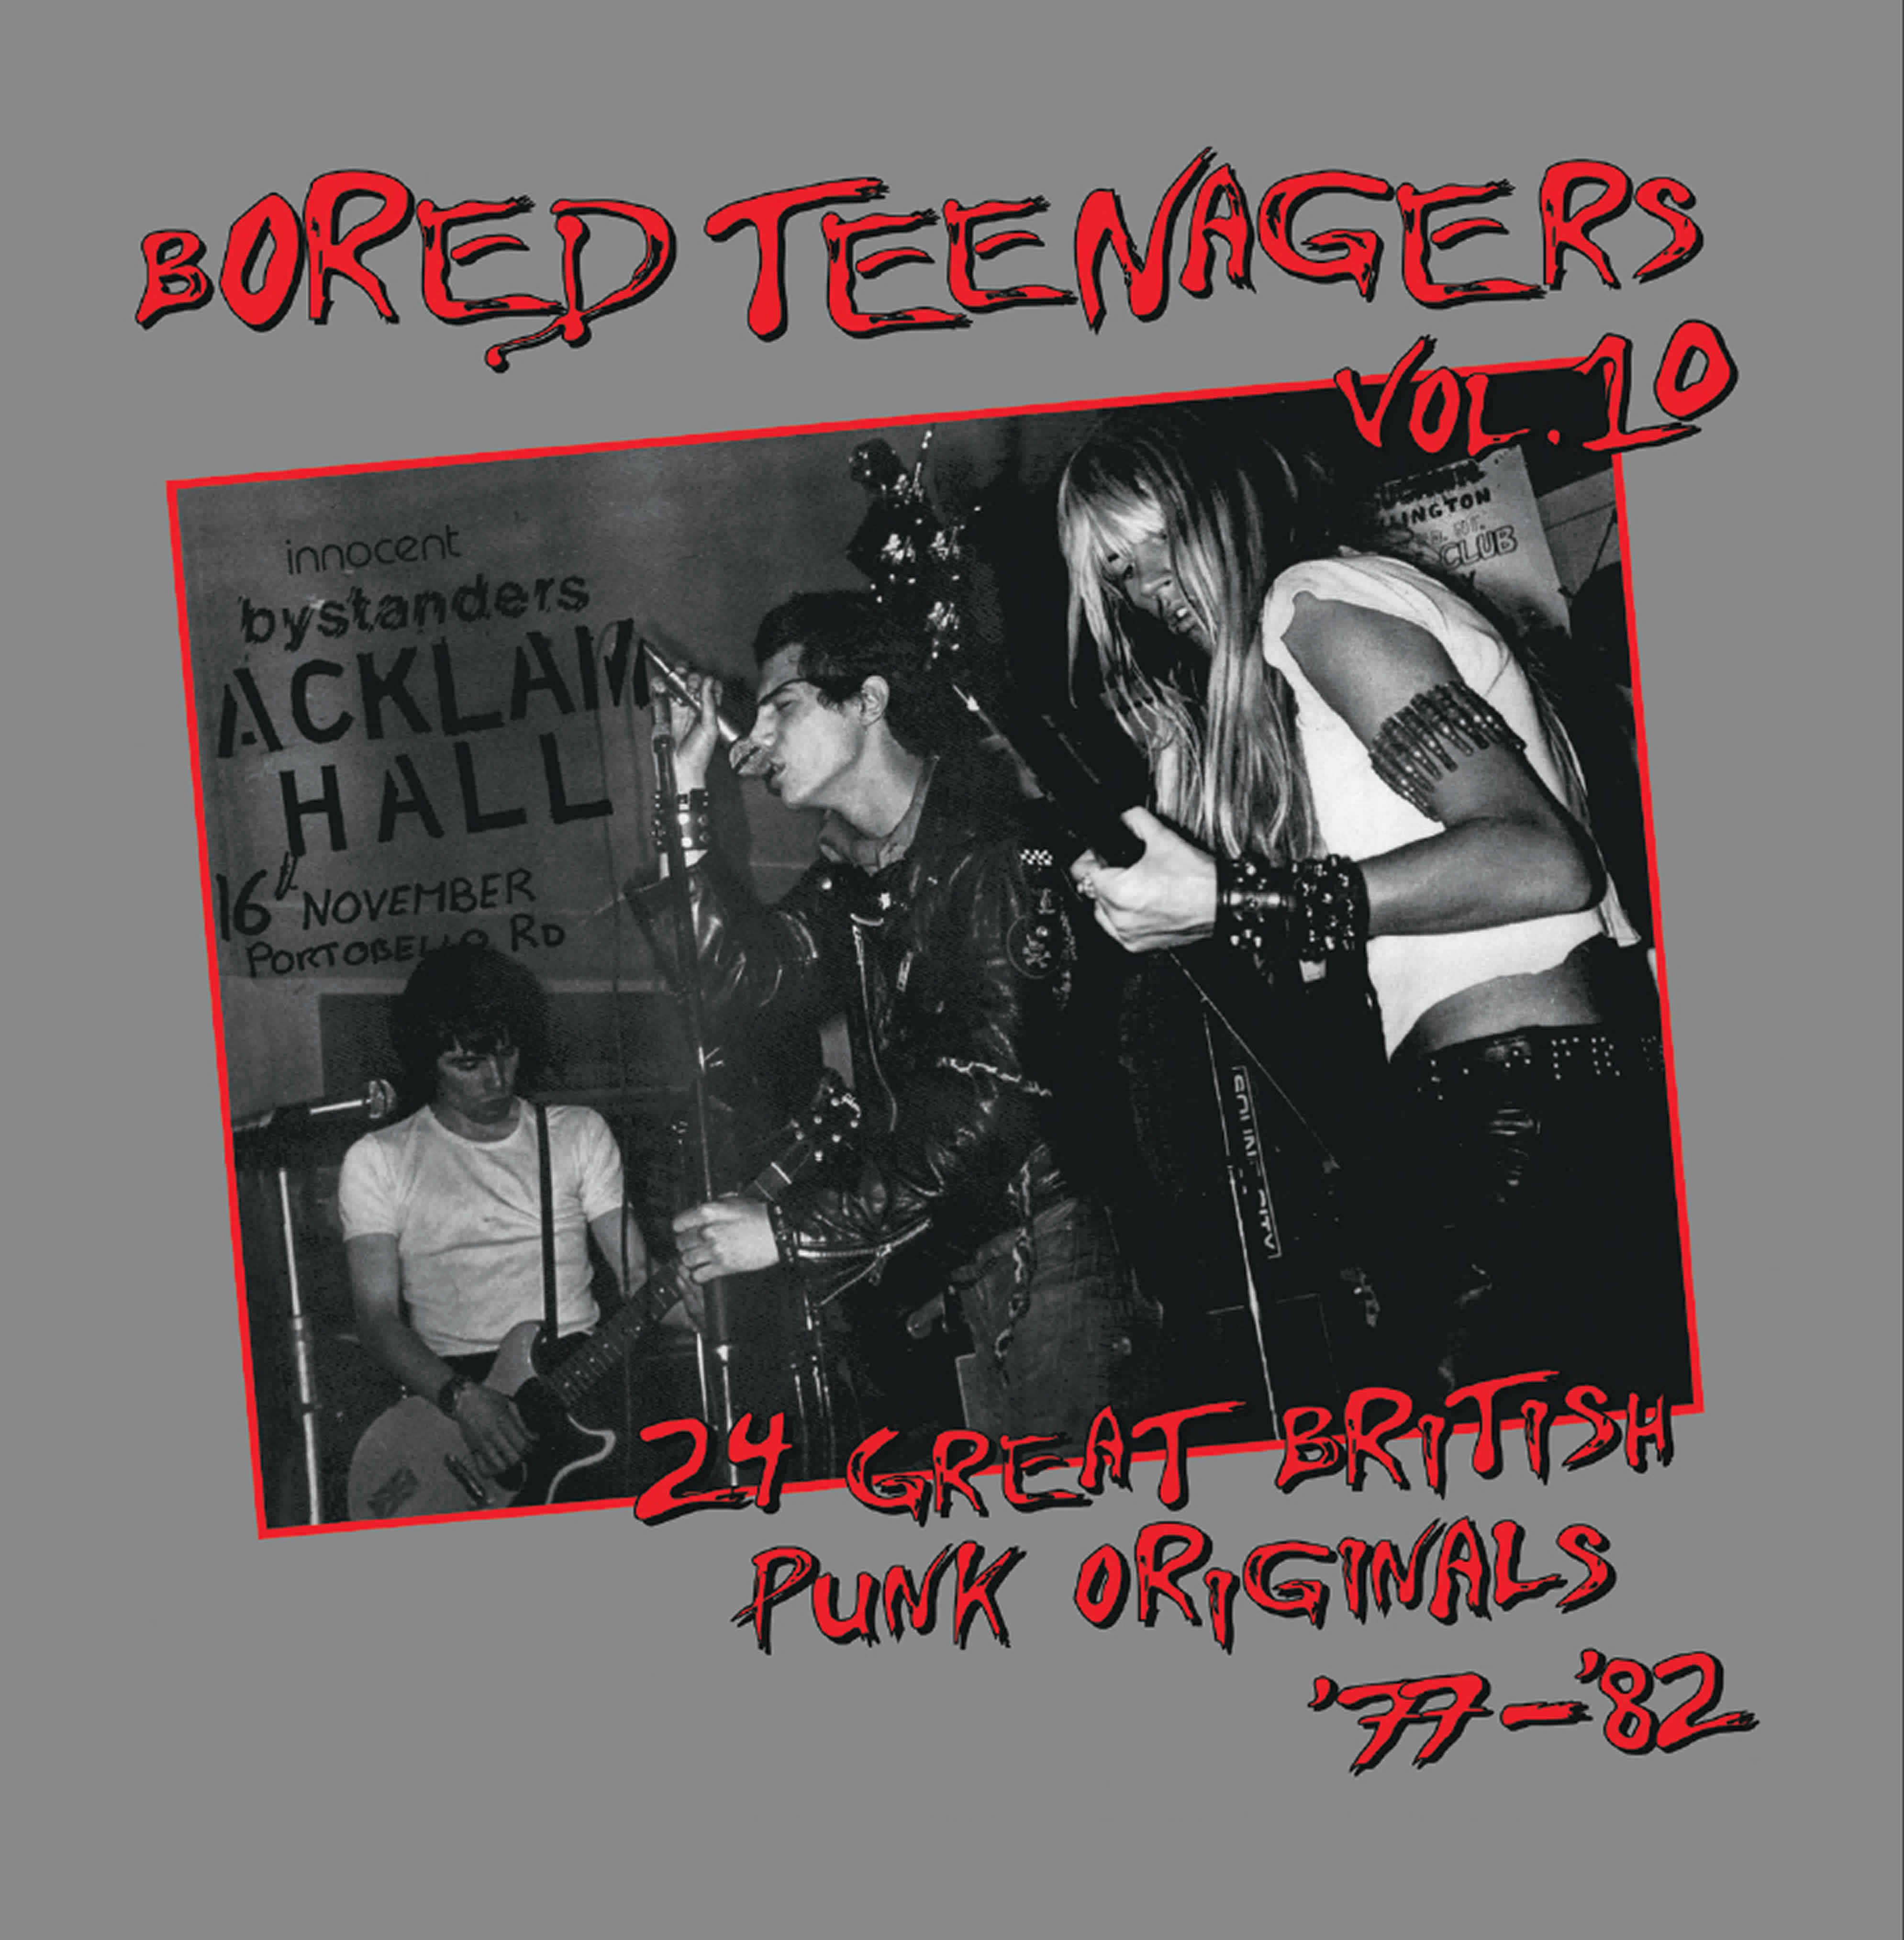 Fenzyx feature on 'Bored Teenagers' #10